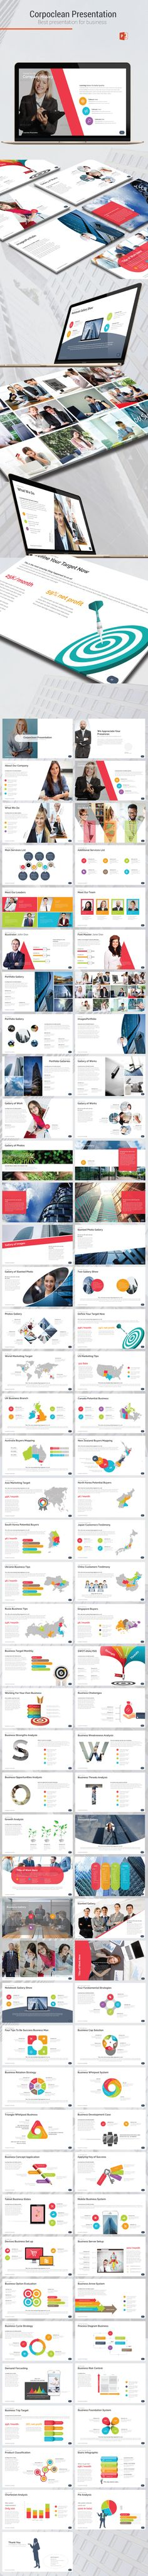 architecture and interior design powerpoint presentation template, Presentation templates